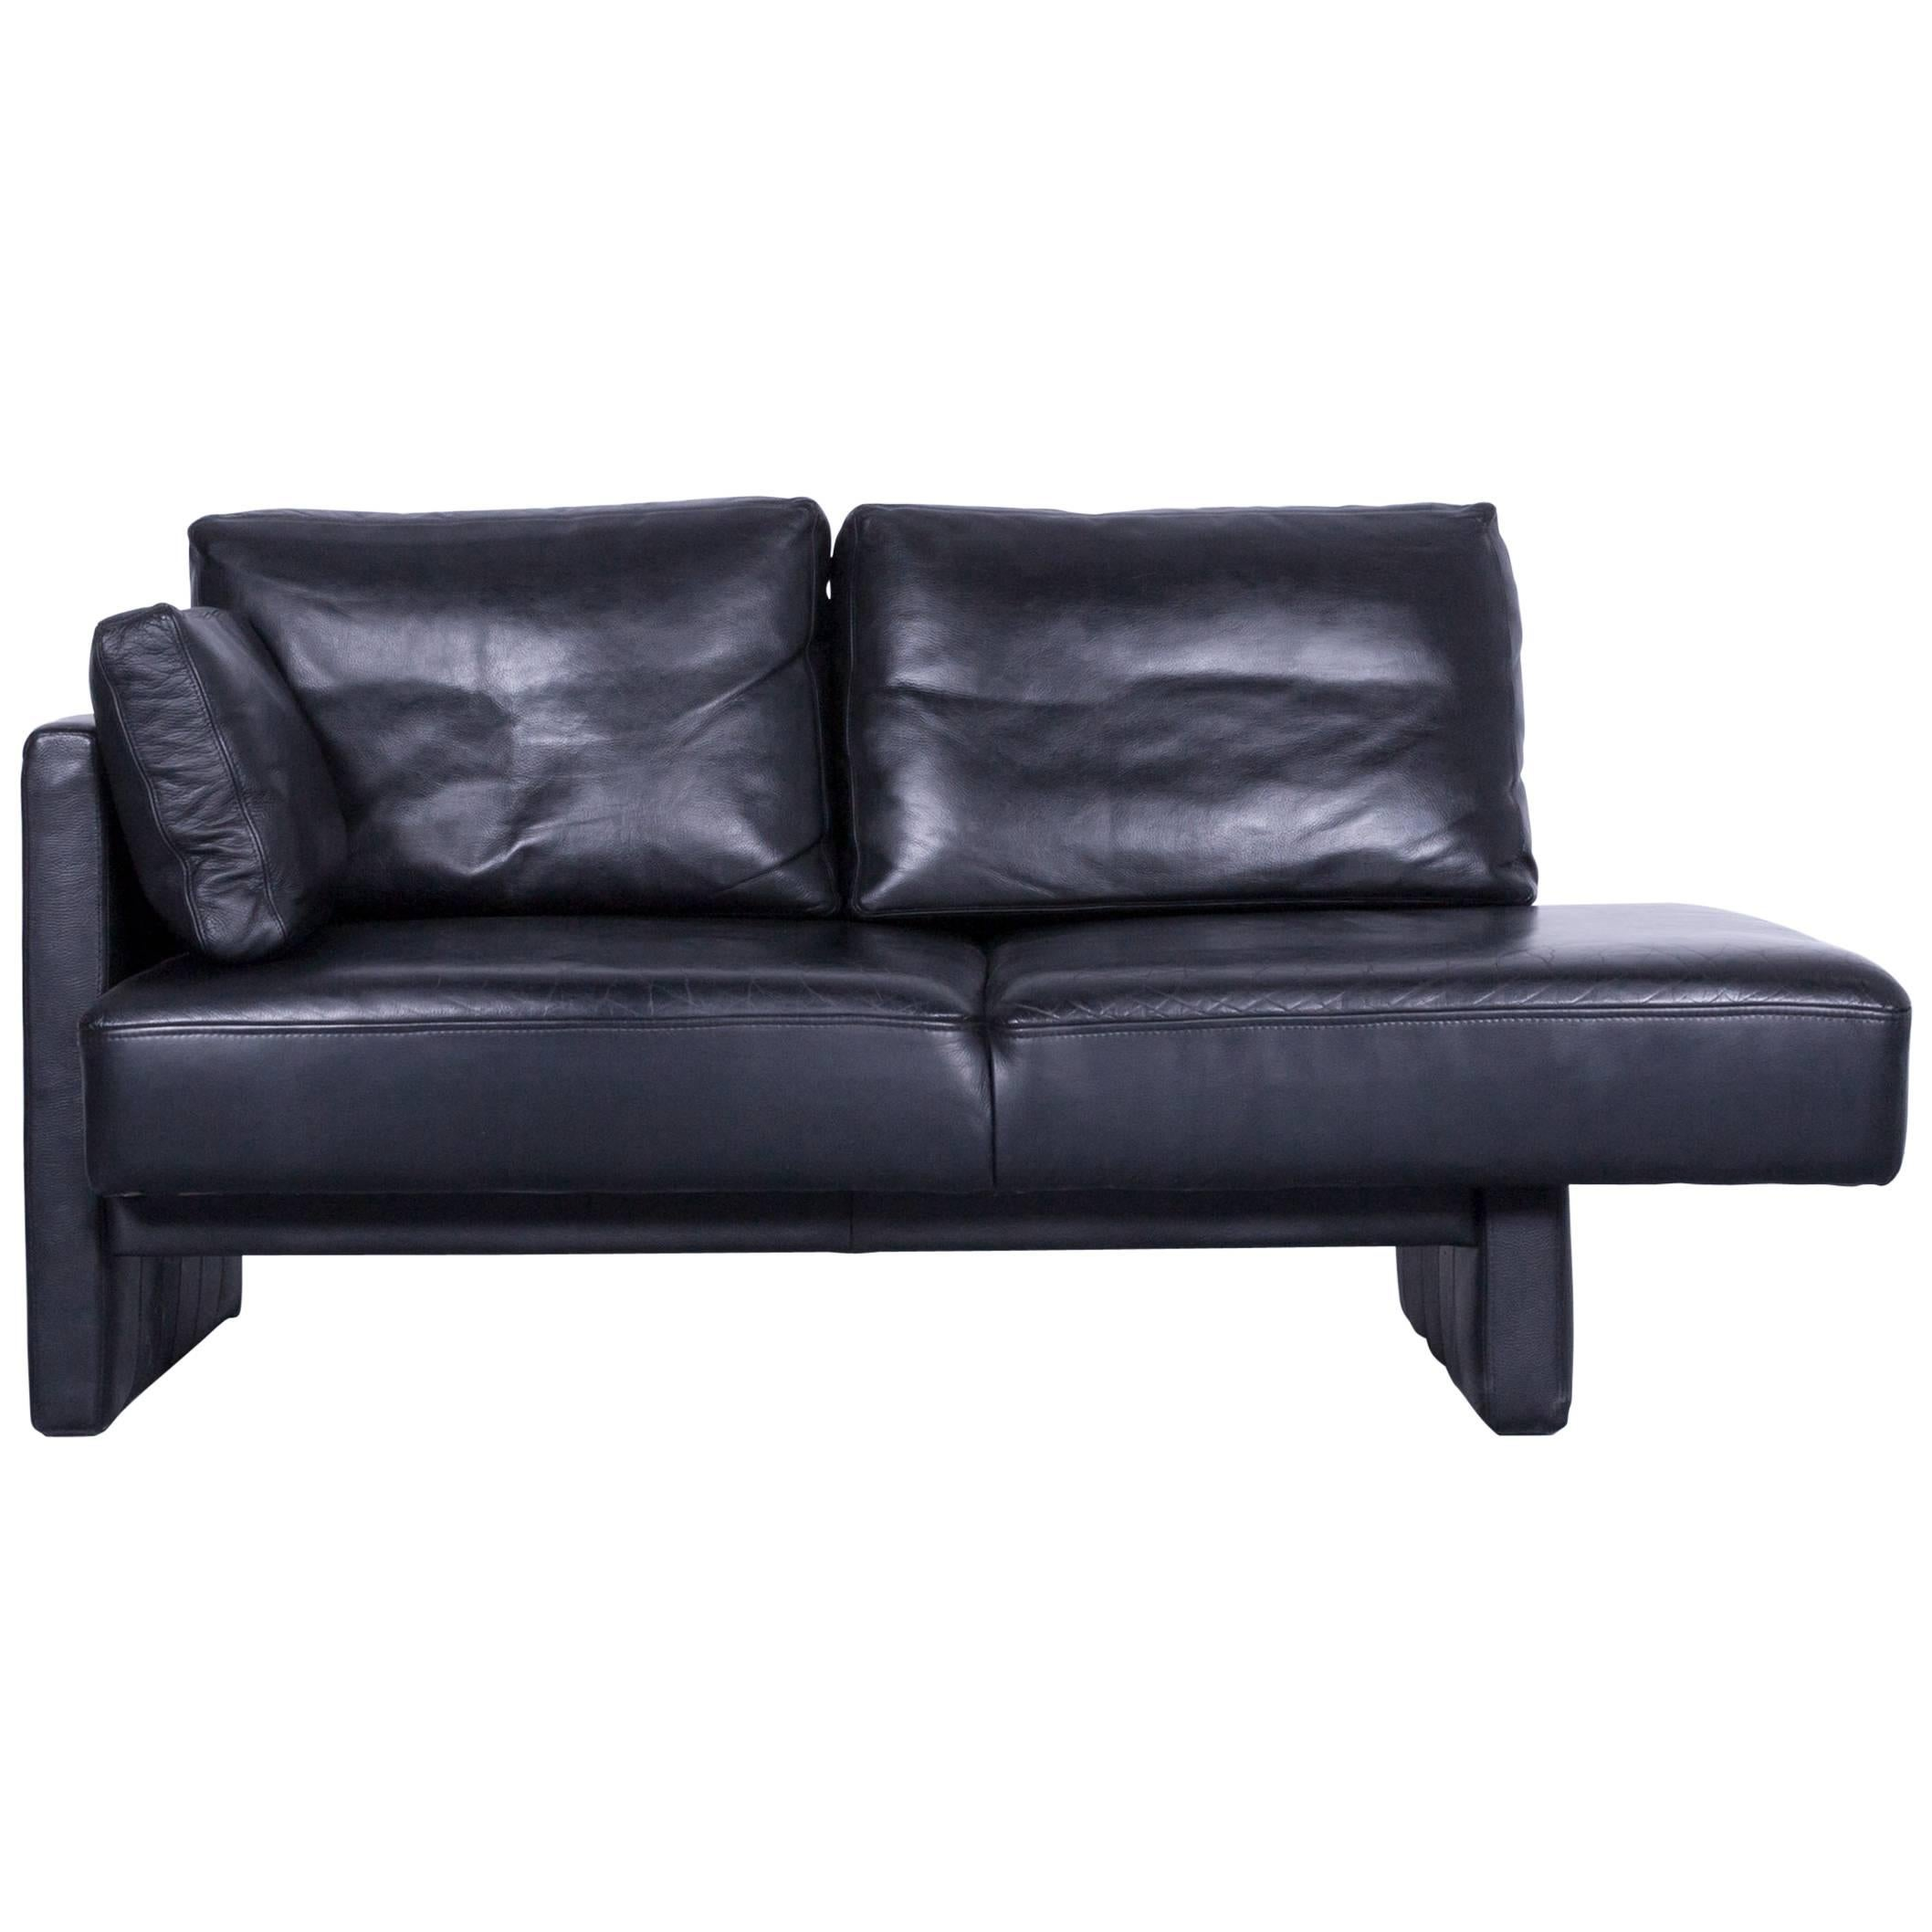 Chaise Designer Good Chaise Designe Awesome Collection Of